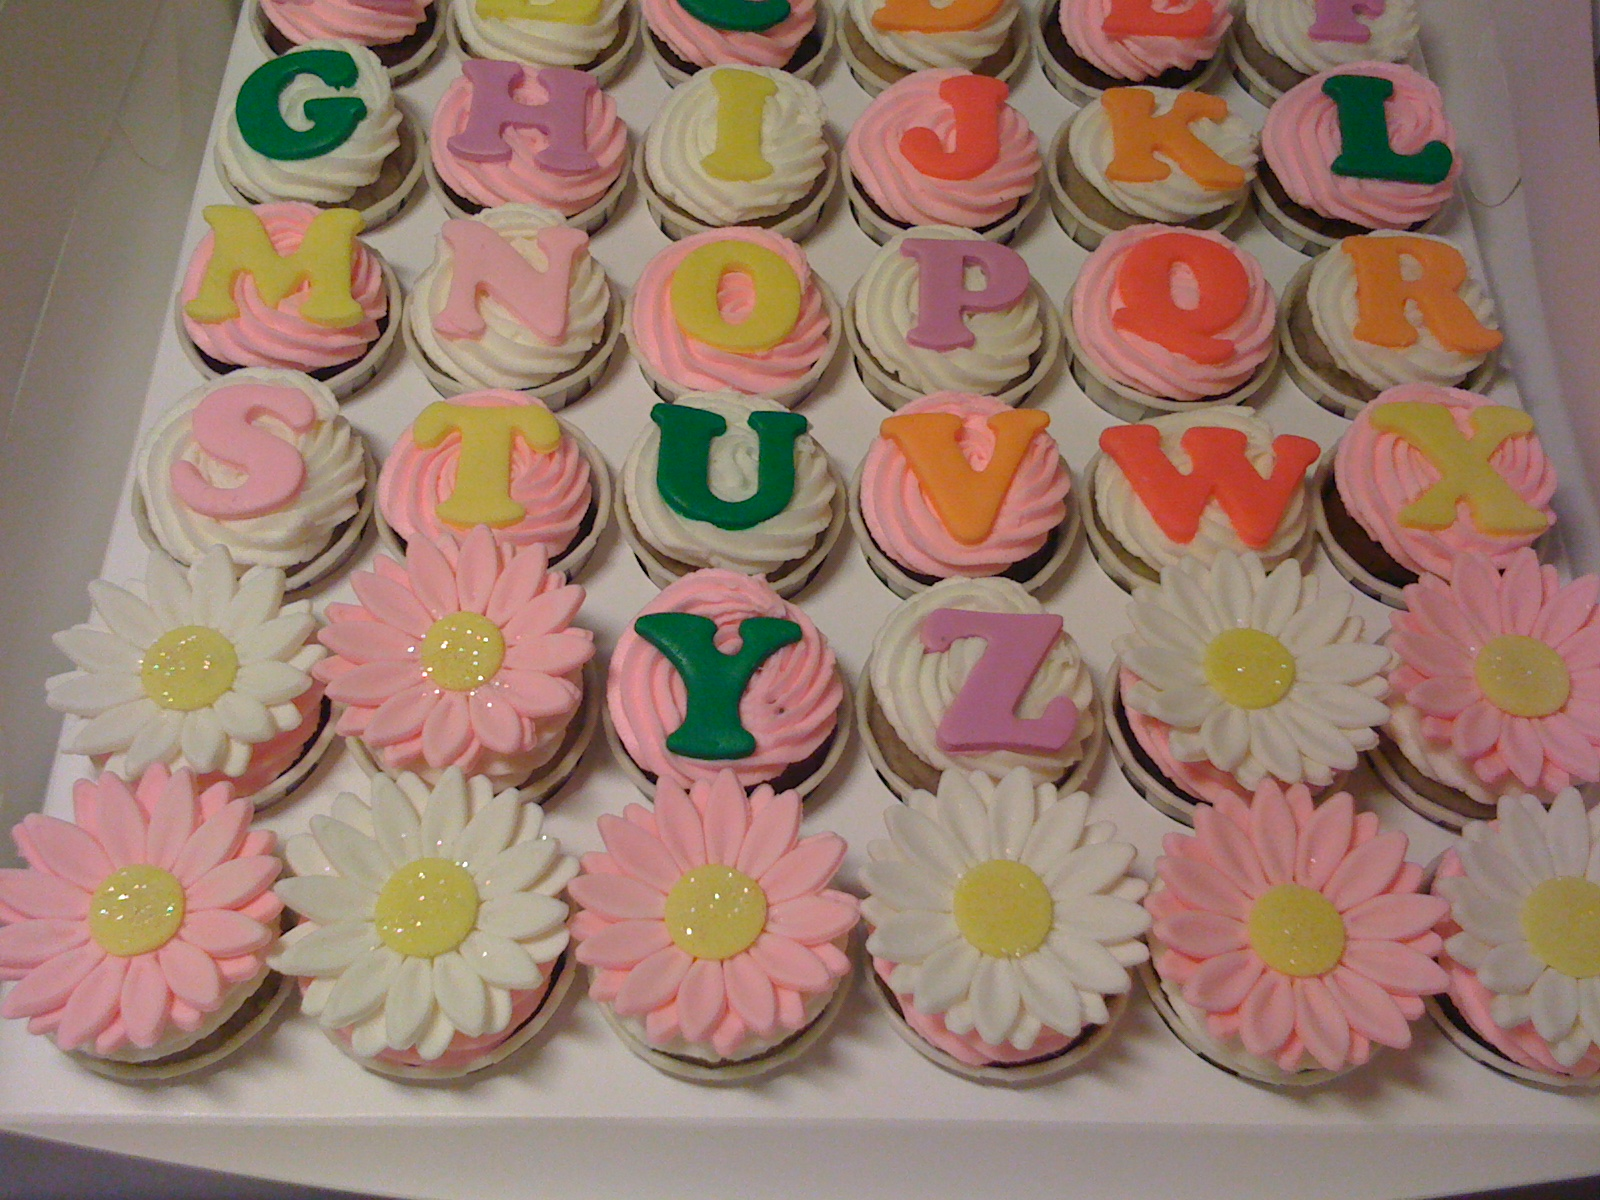 S Alphabet Cake Images : CAKE CUPBOARD: Alphabet cupcakes - A to Z